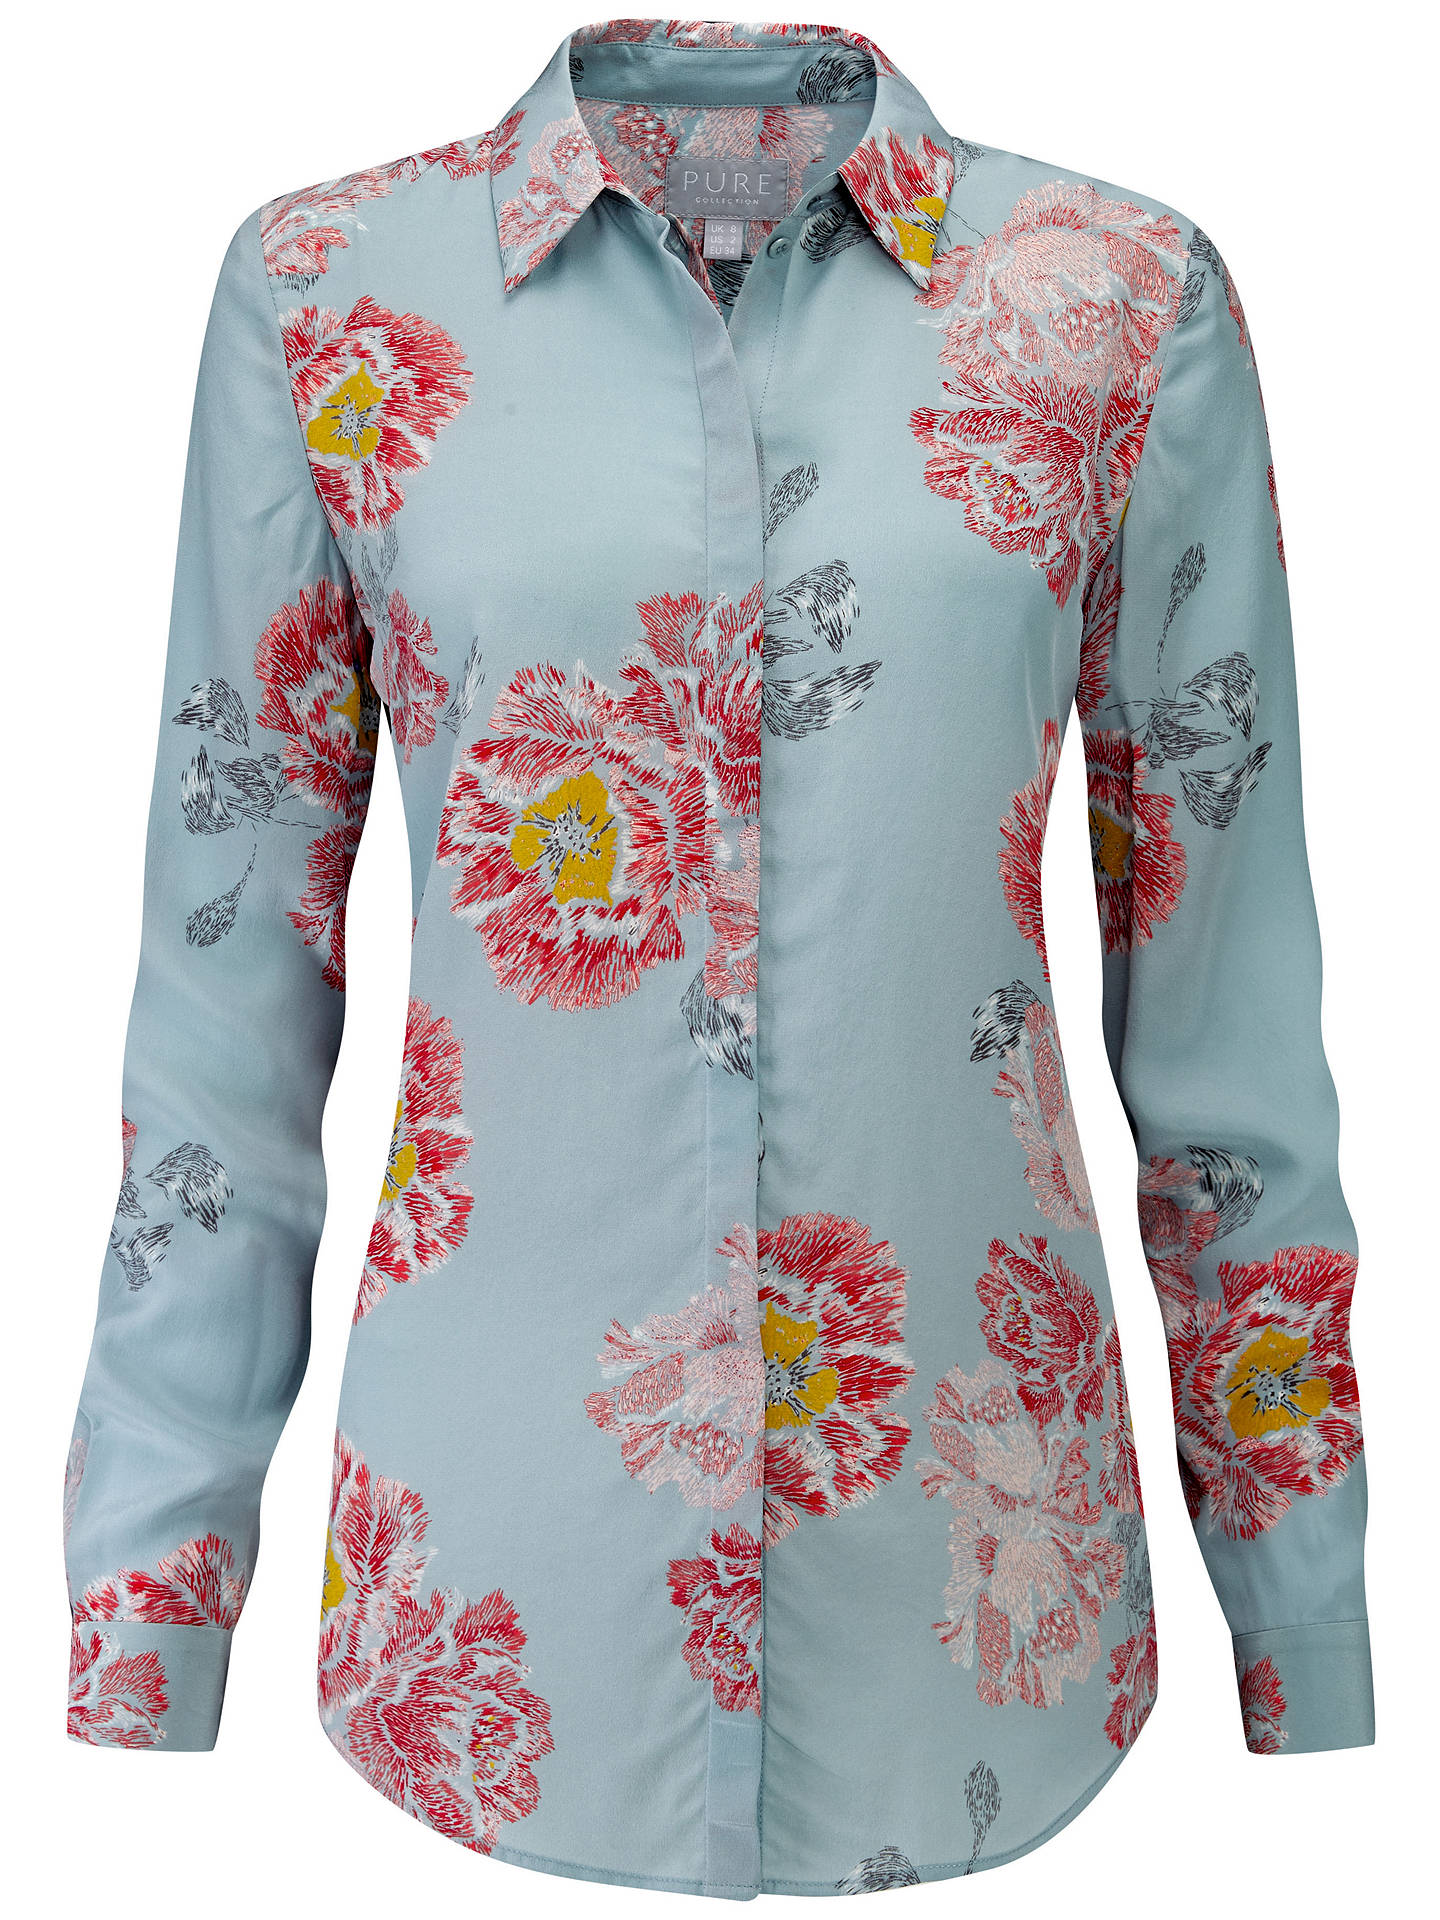 2c96e4b2414 Buy Pure Collection Washed Silk Blouse